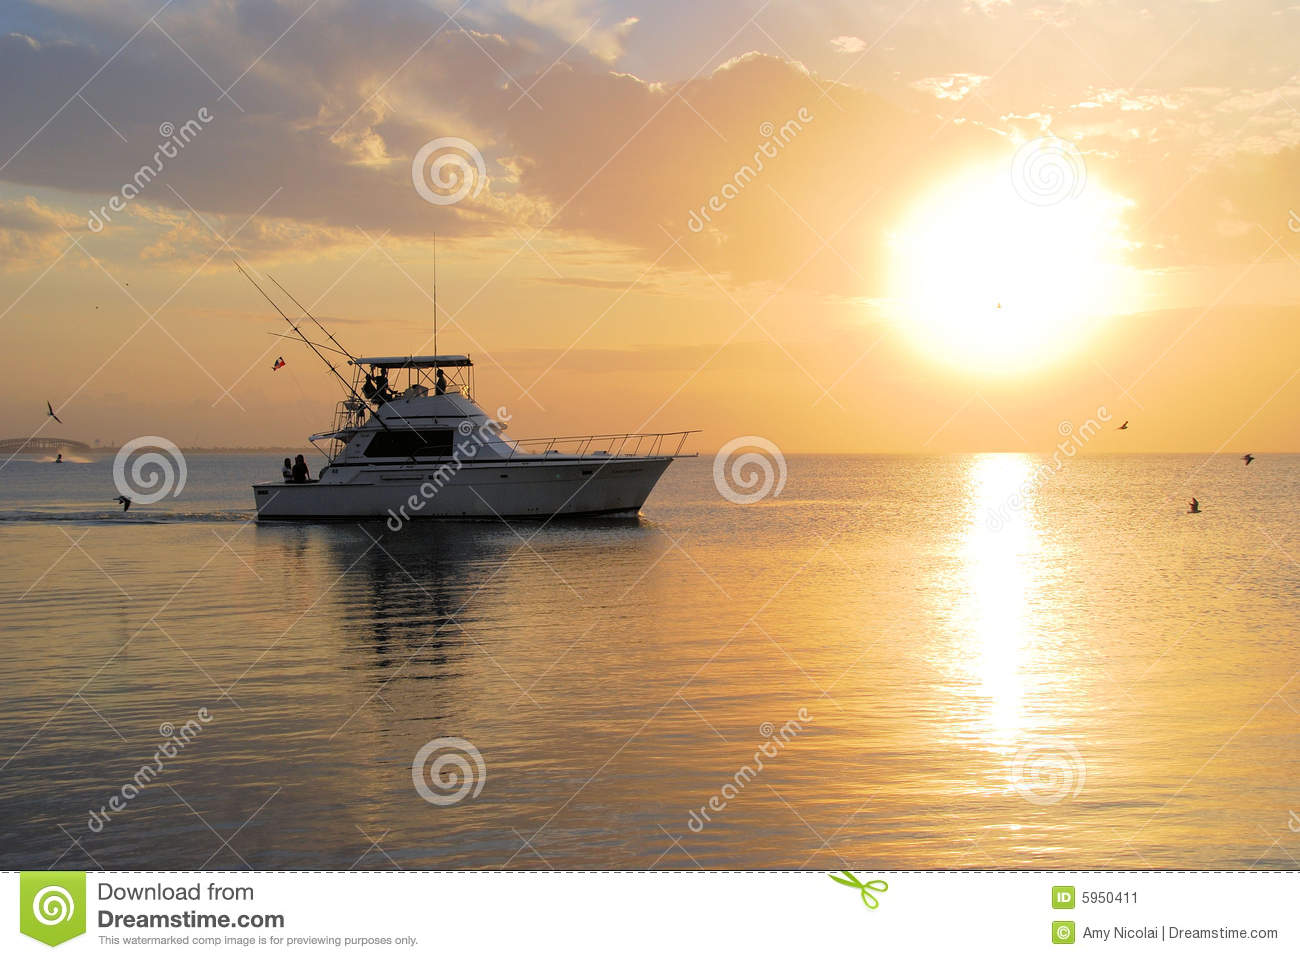 Boat going fishing at sunset